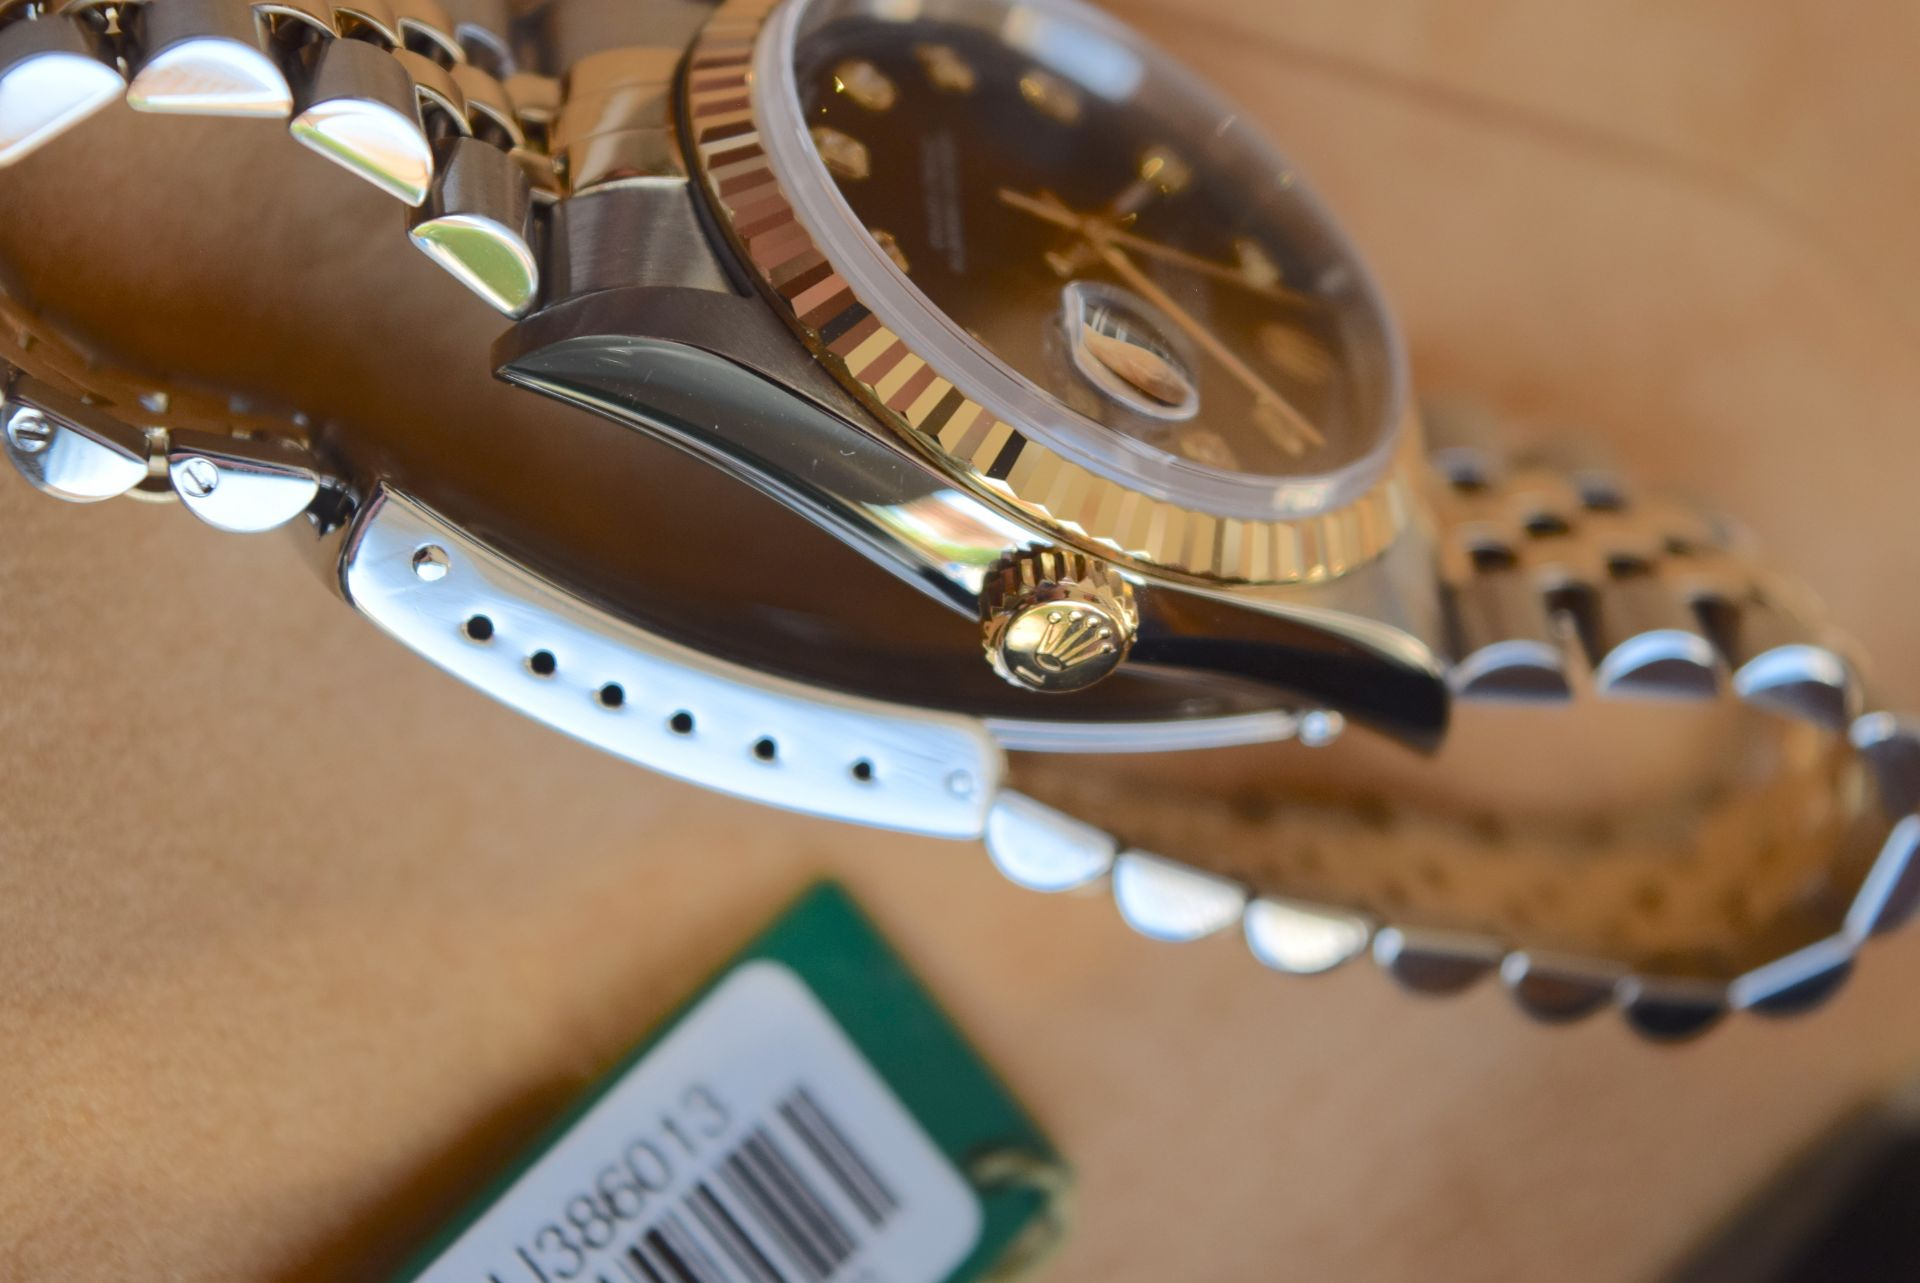 18CT GOLD/ STEEL ROLEX DATEJUST - 36MM, MENS (COMPLETE SET INC BOX, PAPERS, TAGS ETC) - Image 11 of 25